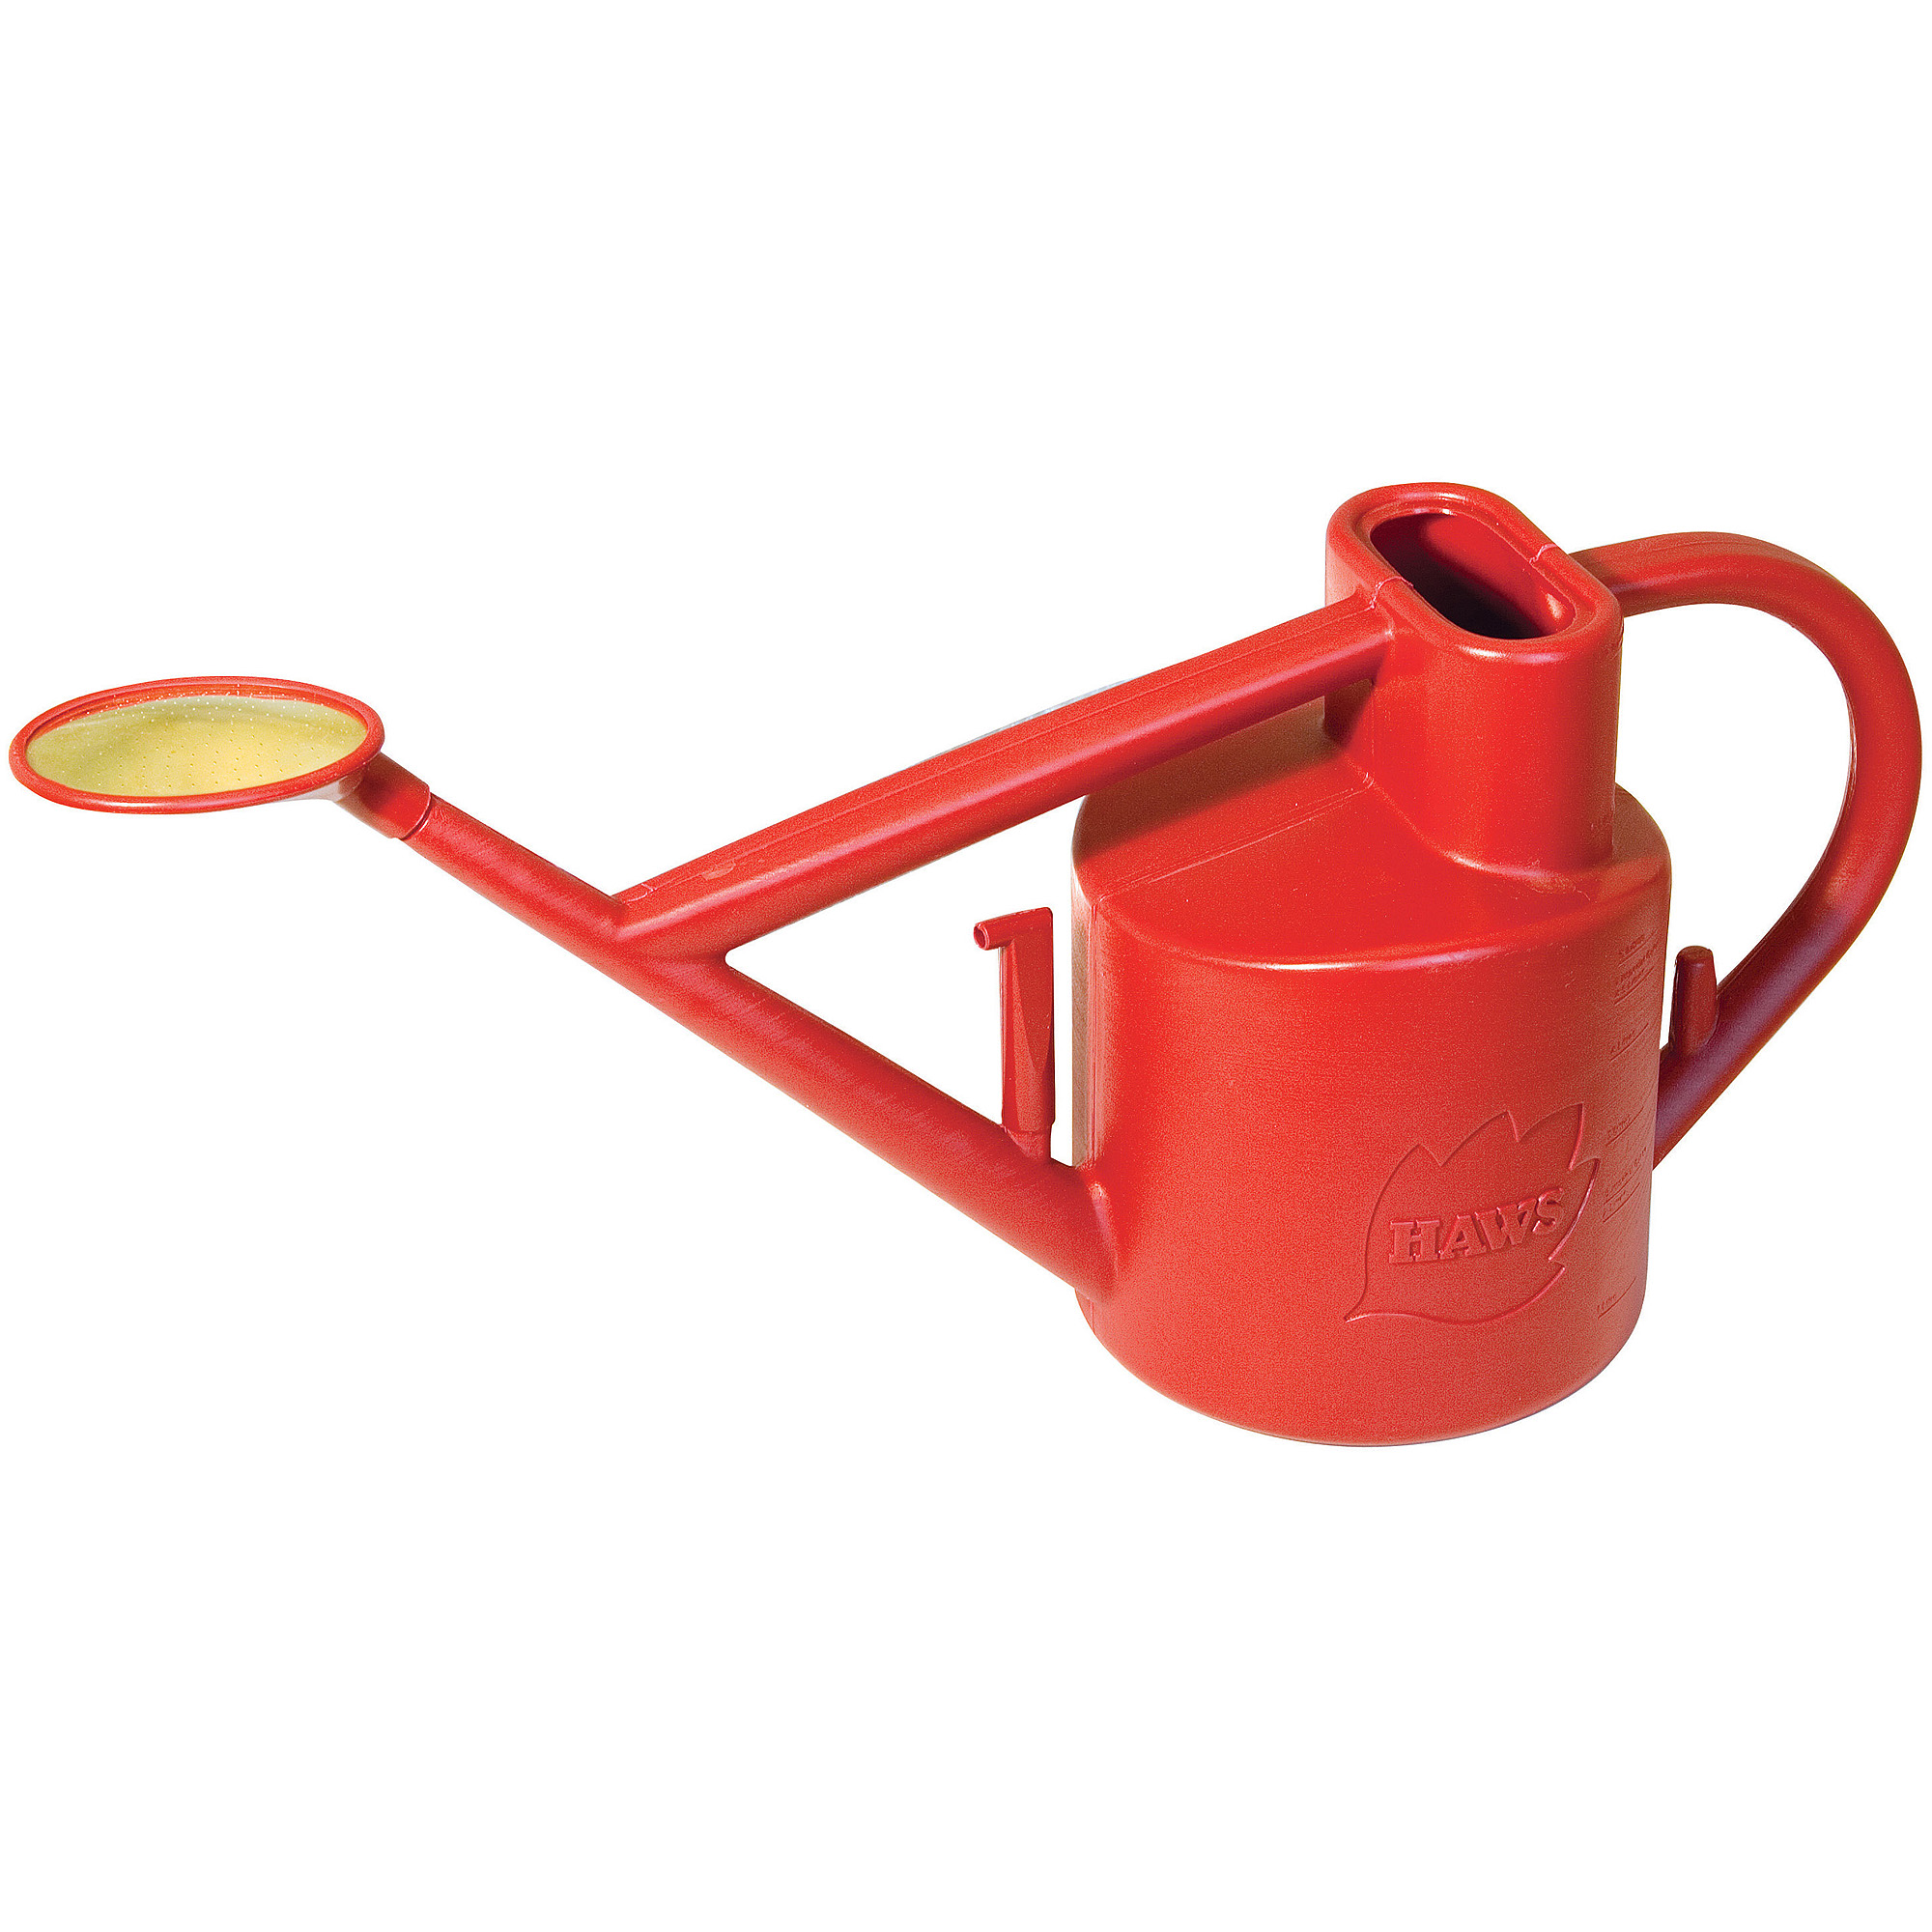 Watering Cans With Long Spouts Haws Traditional 2 3 Gal Watering Can Titanium V143t